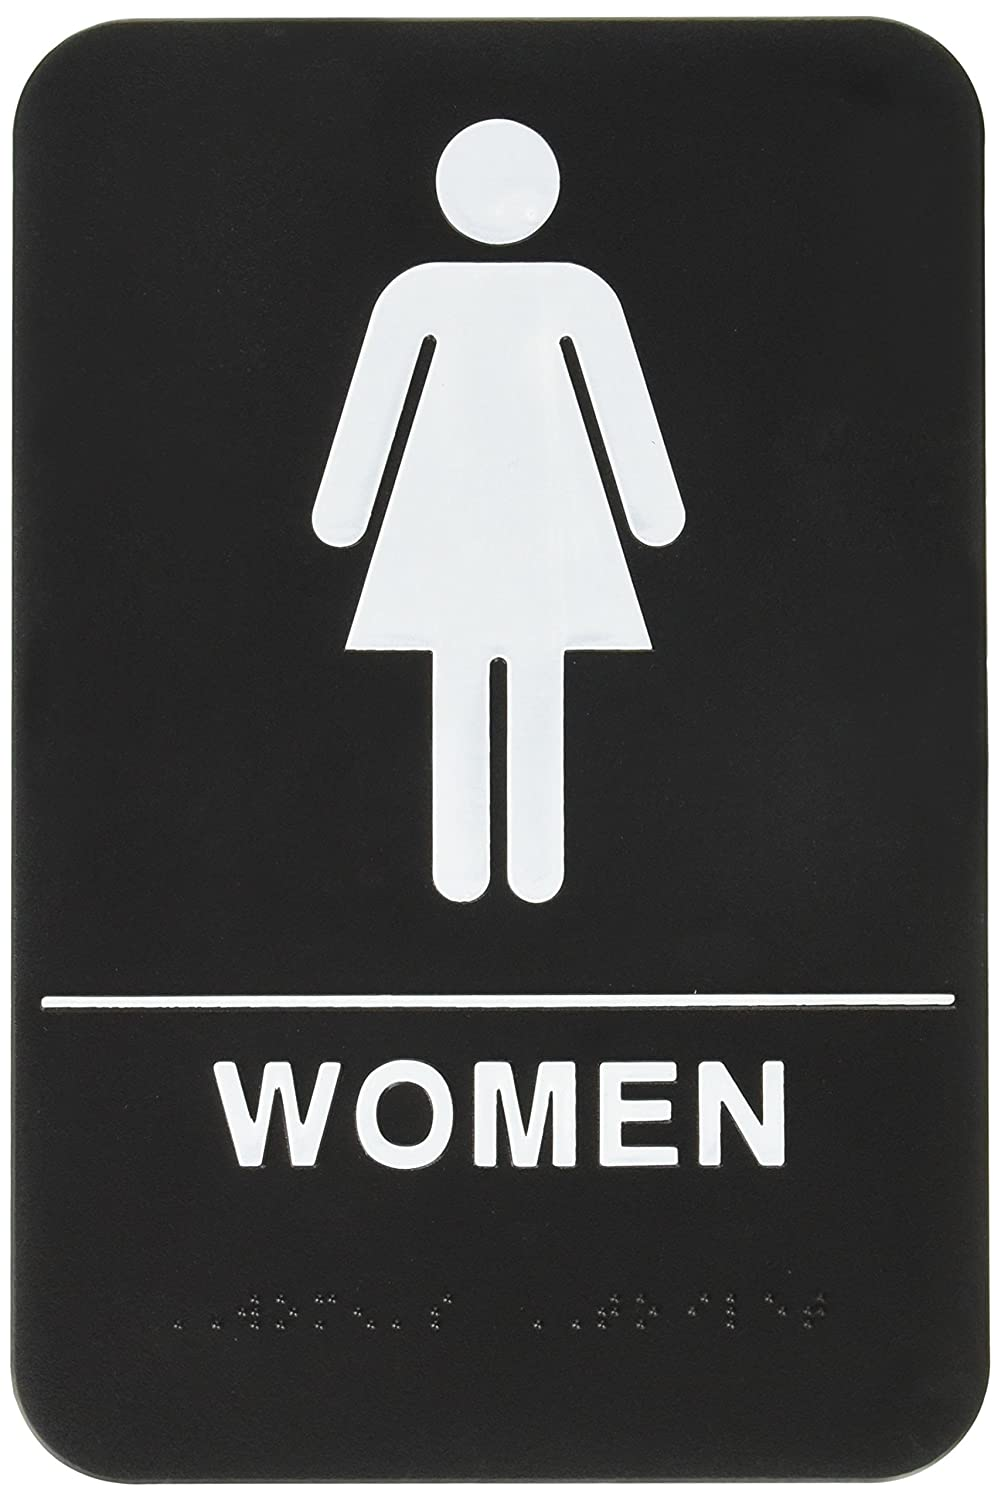 Rock ridge women restroom sign black white ada ebay for Women only bathroom sign